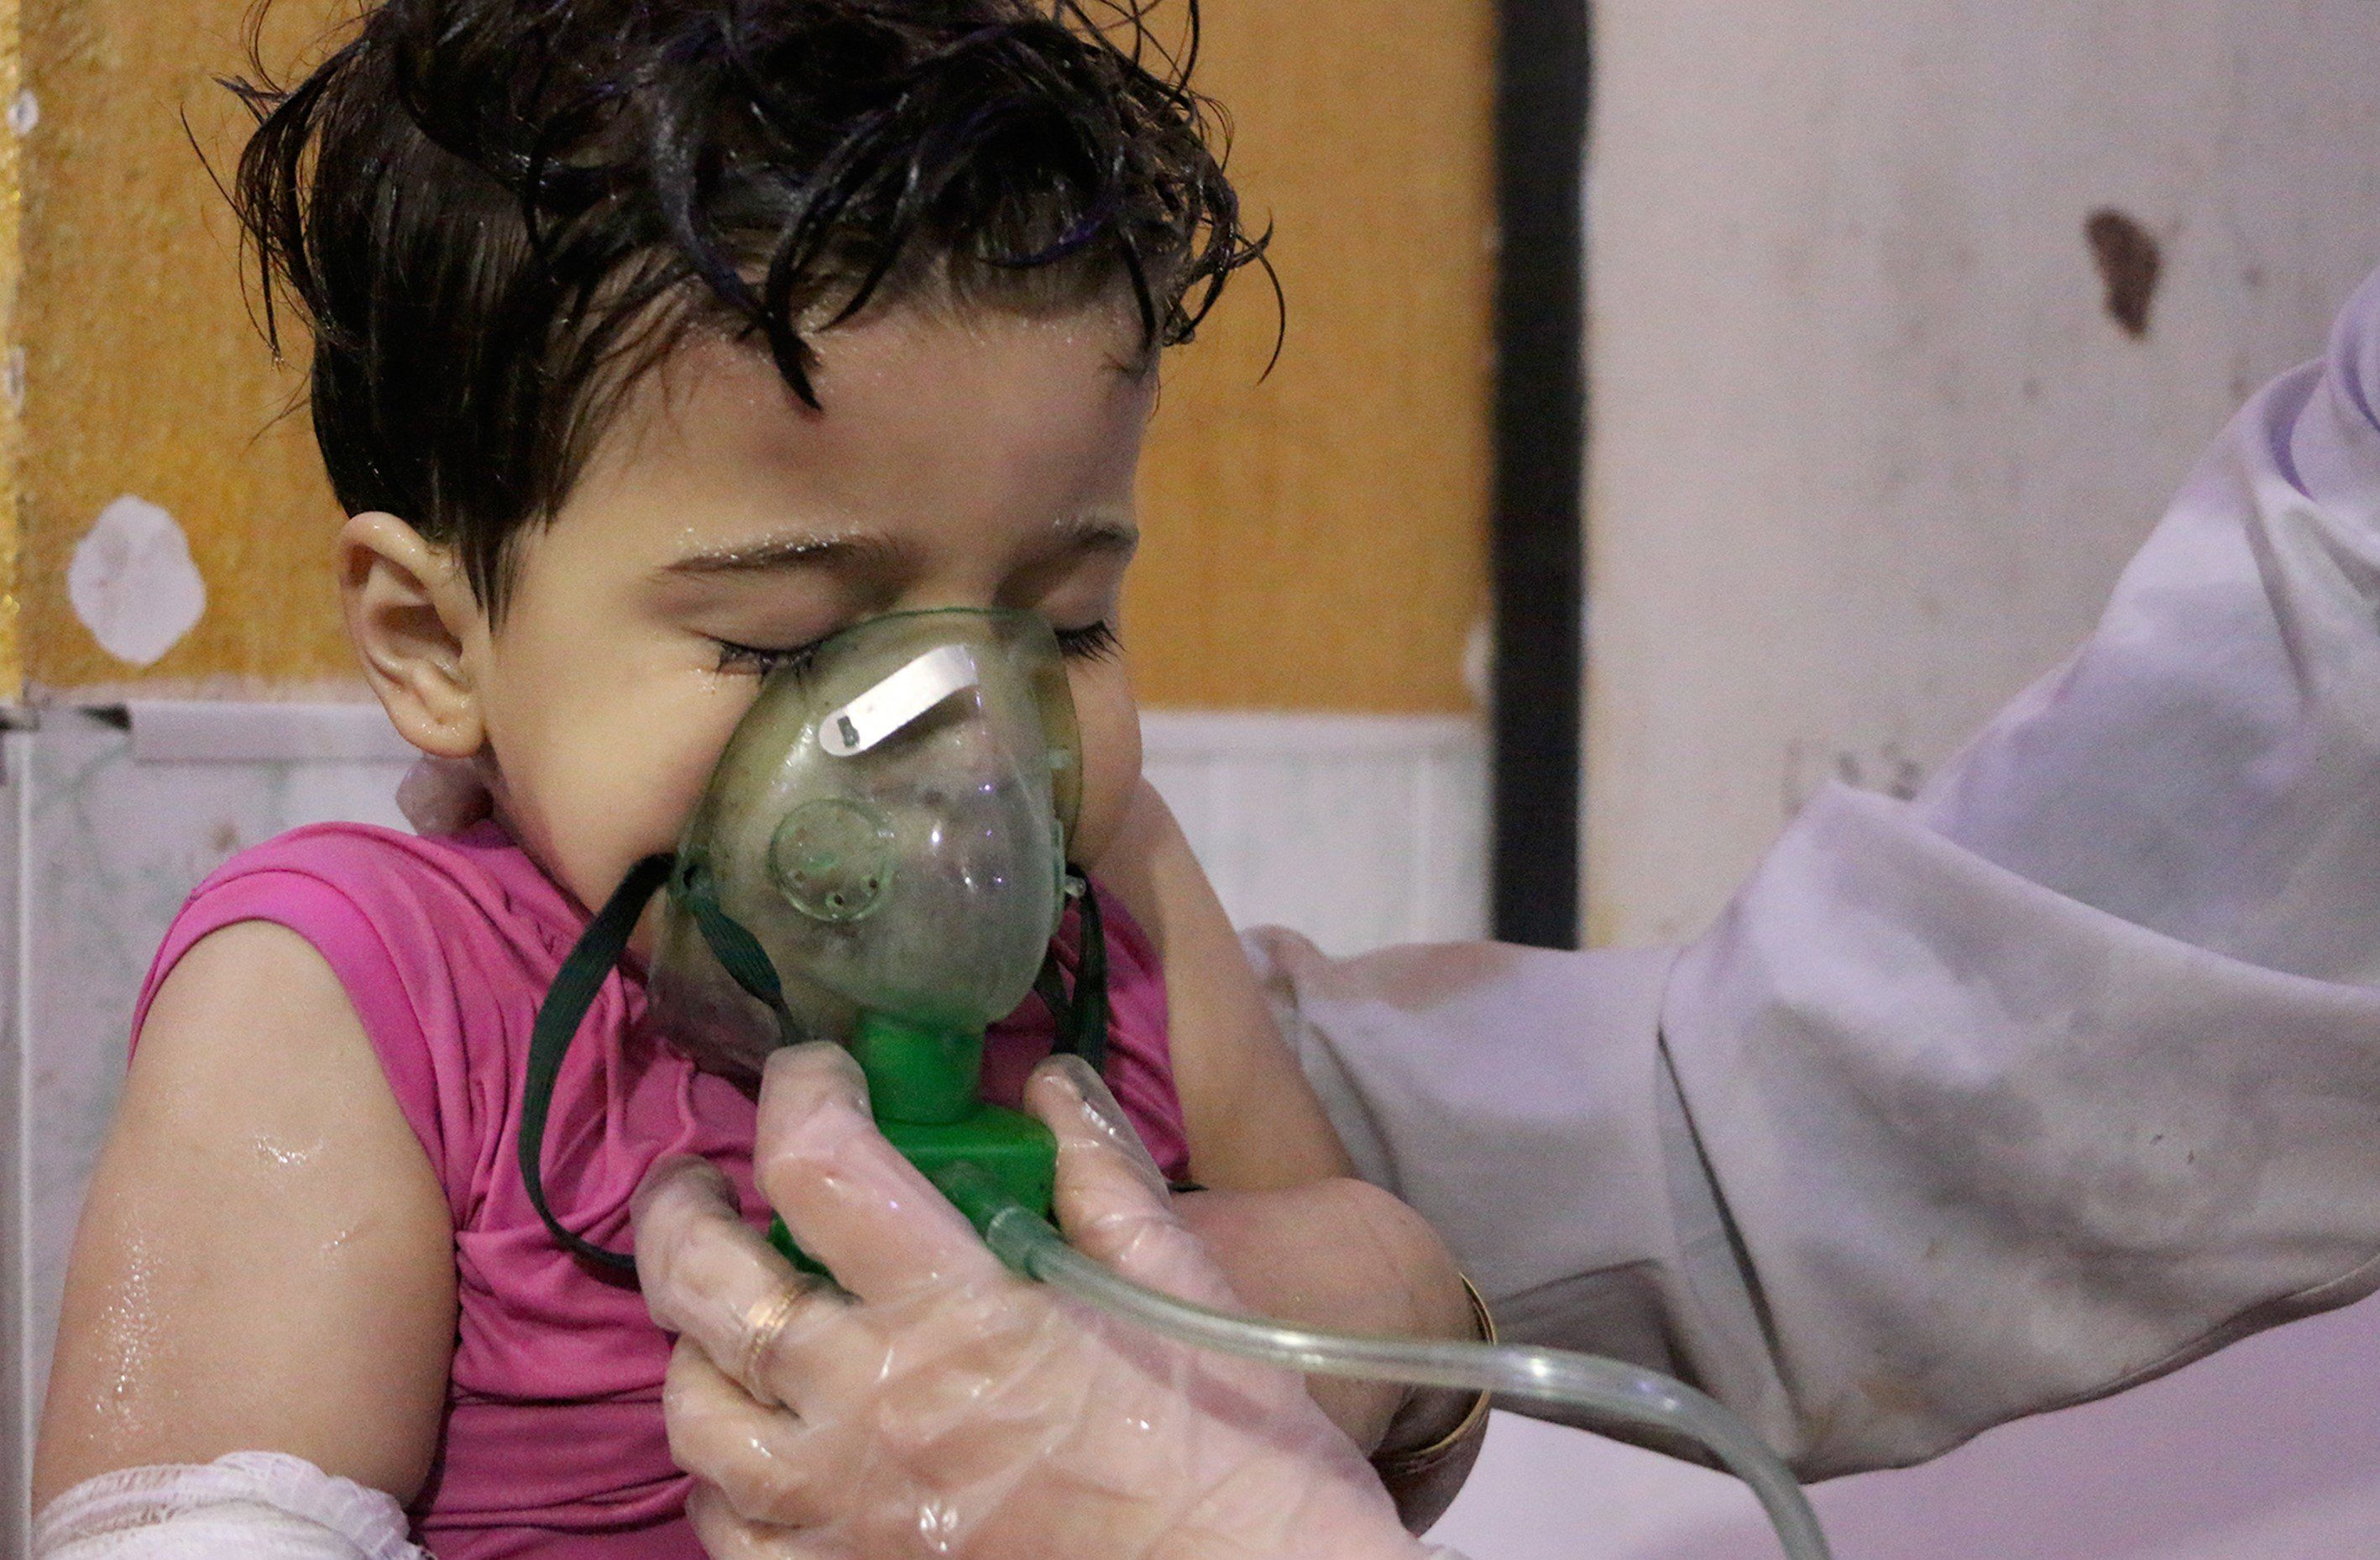 A Syrian child receives medical treatment after the chemical attack on Douma